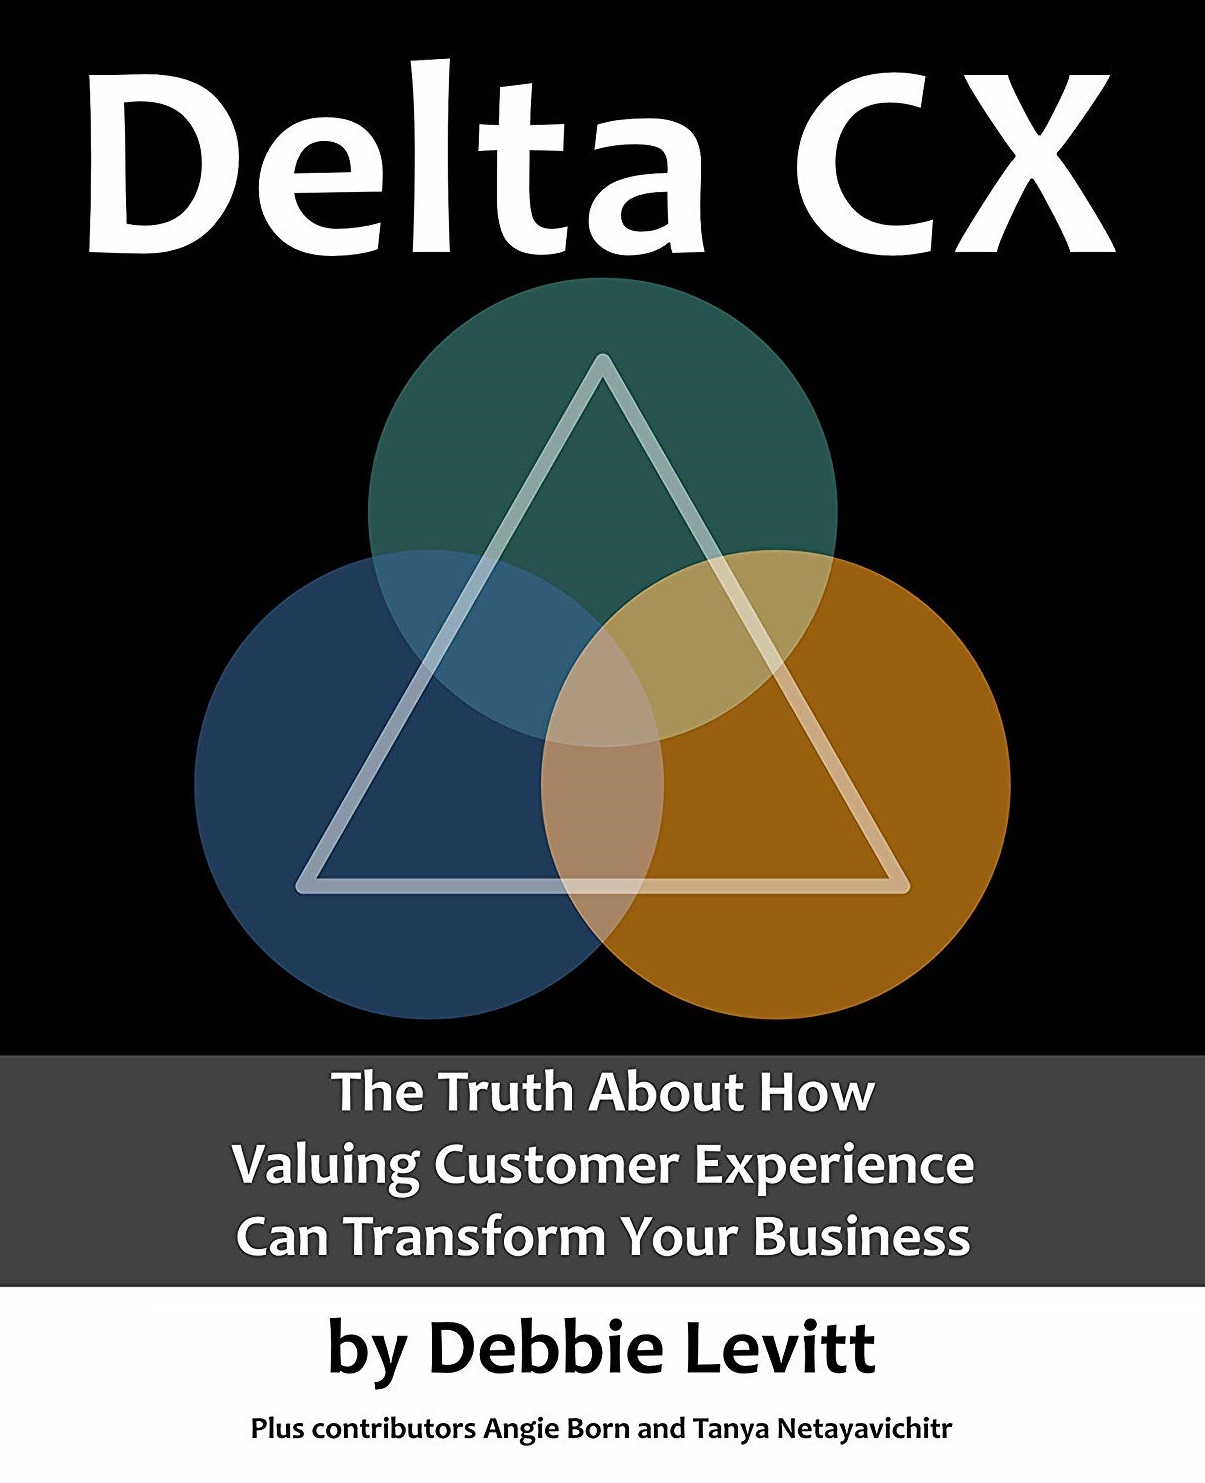 Delta CX The Truth About How Valuing Customer Experience Can Transform Your Business